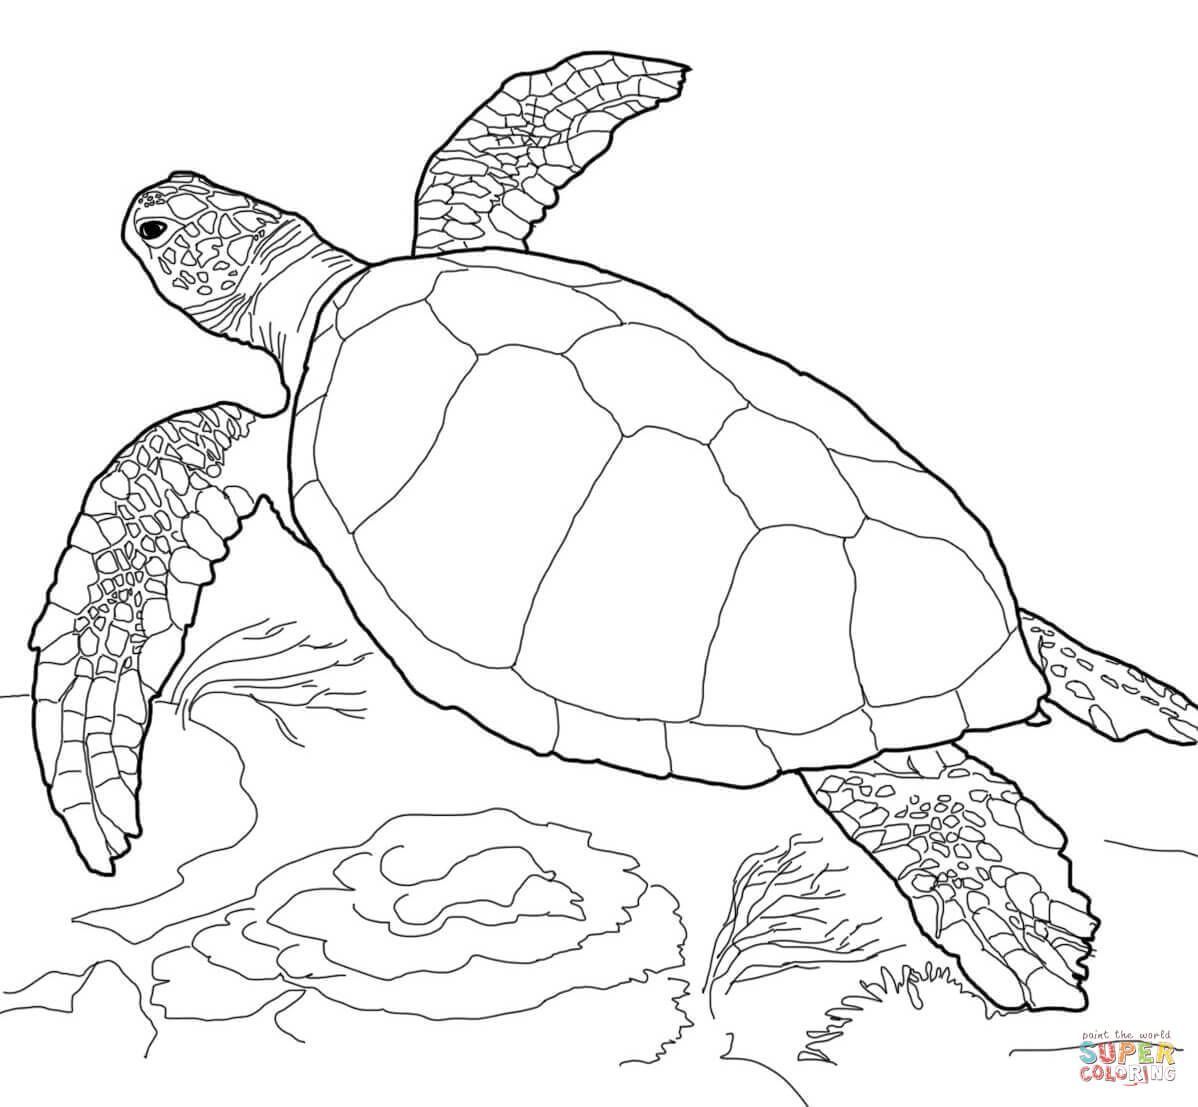 Loggerhead Sea Turtle Coloring Page Free Printable Coloring